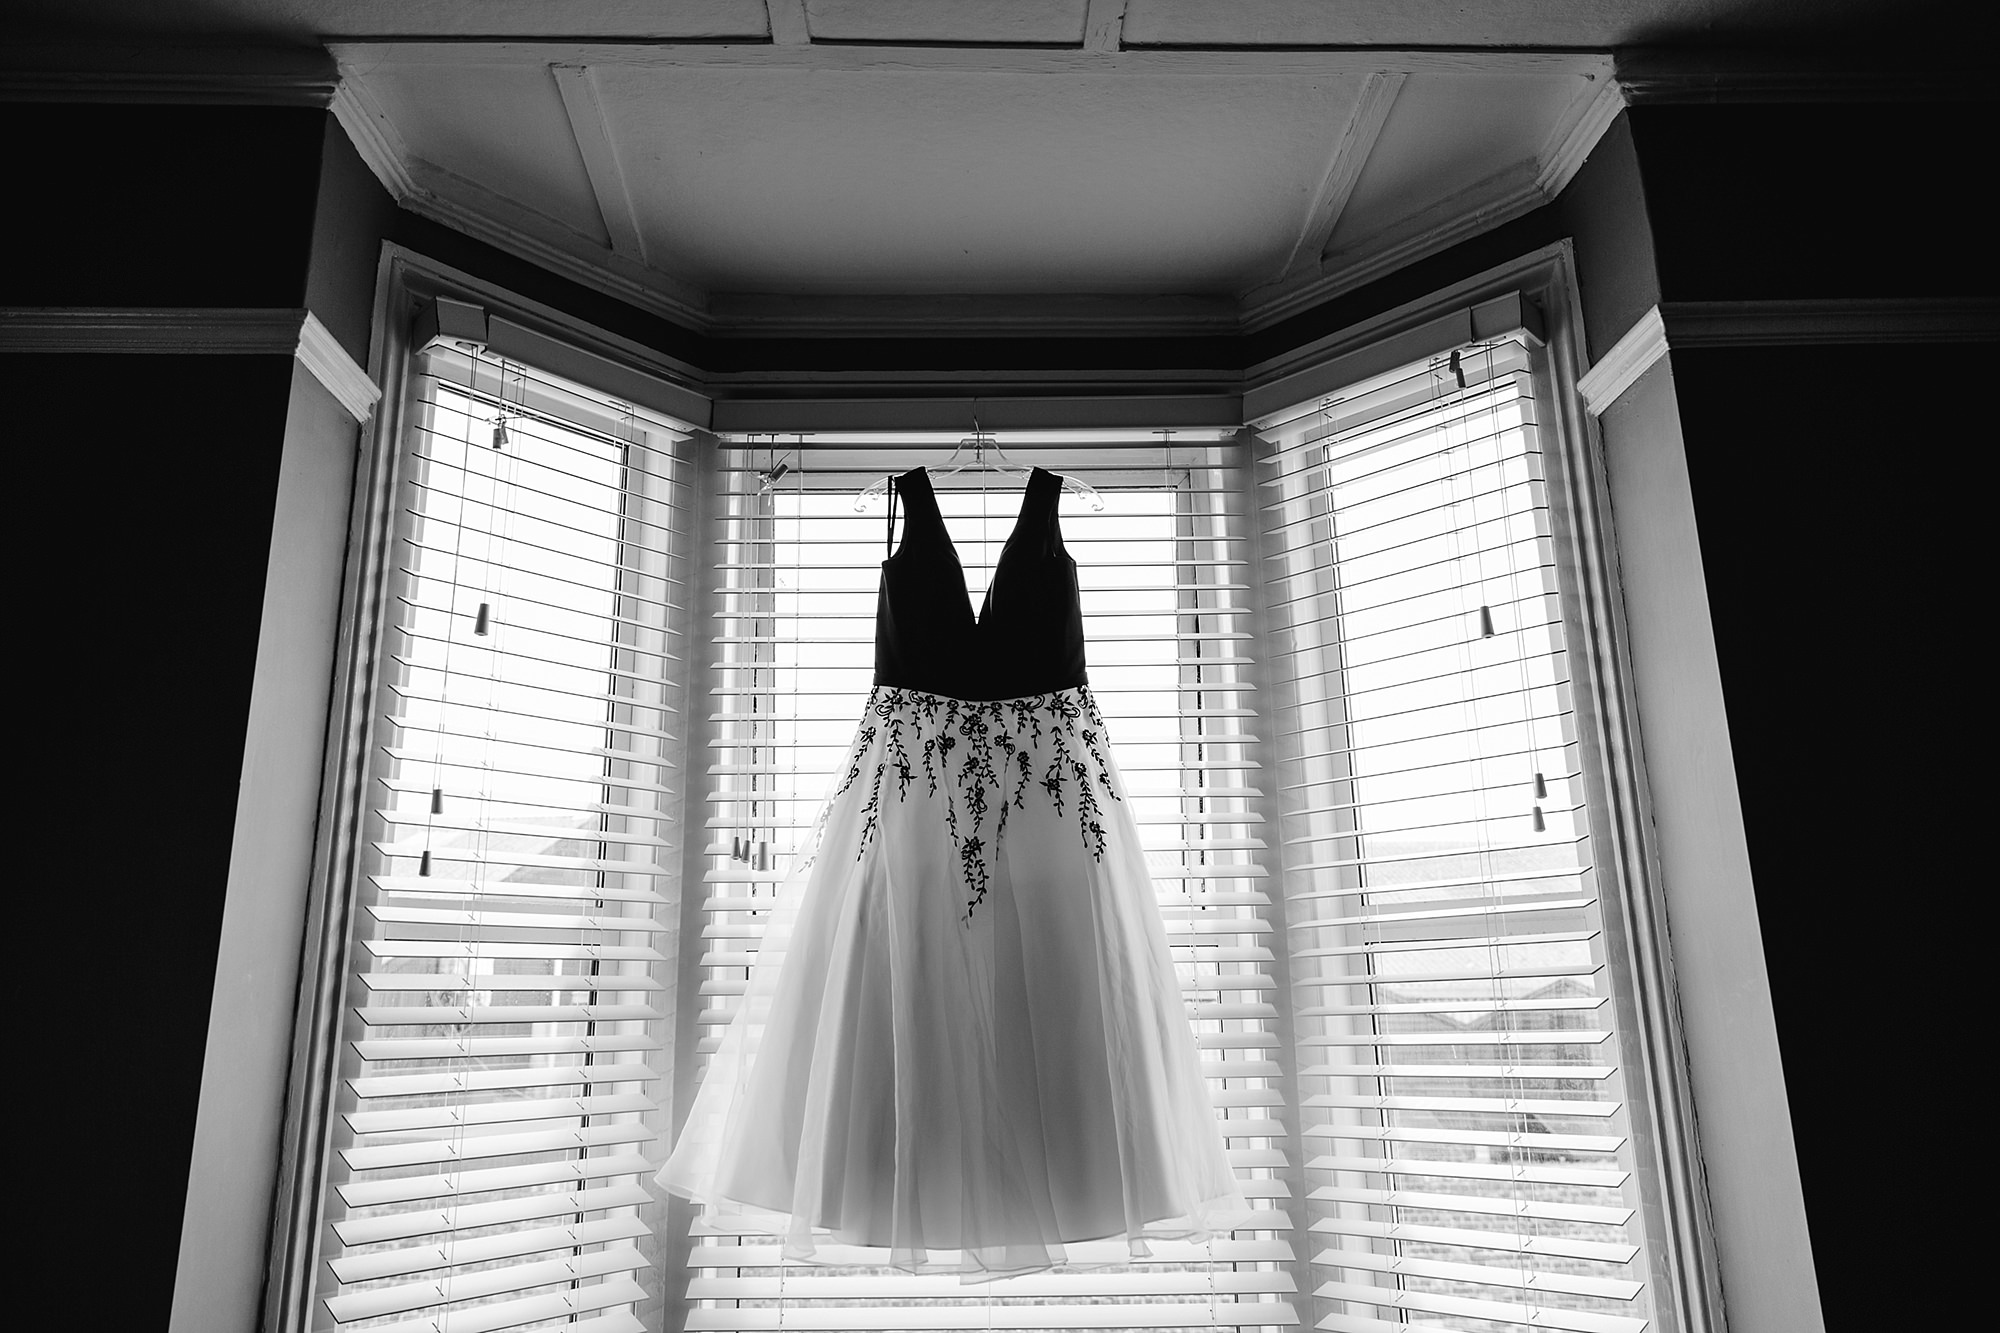 Beacon House wedding image of a wedding dress hung in a window